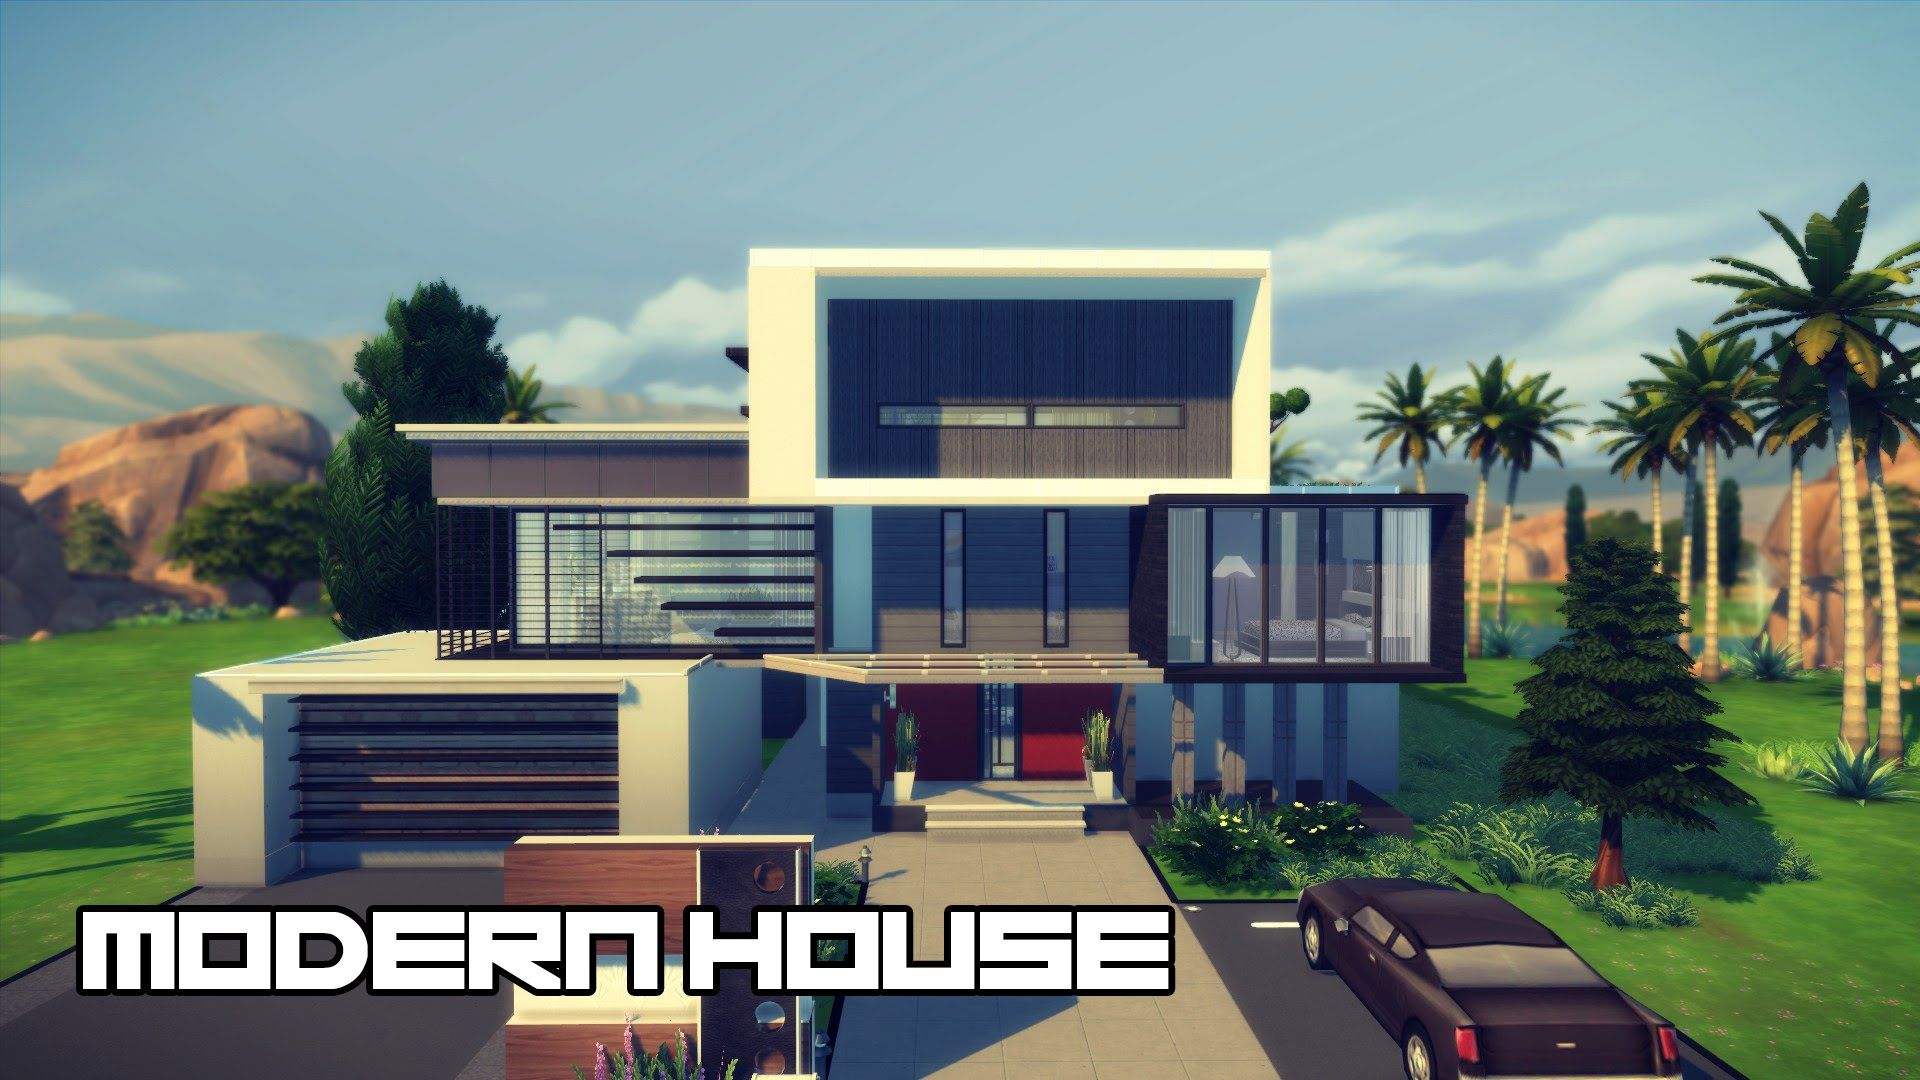 Modern House Design - The Sims 20  Sims 20 modern house, Modern